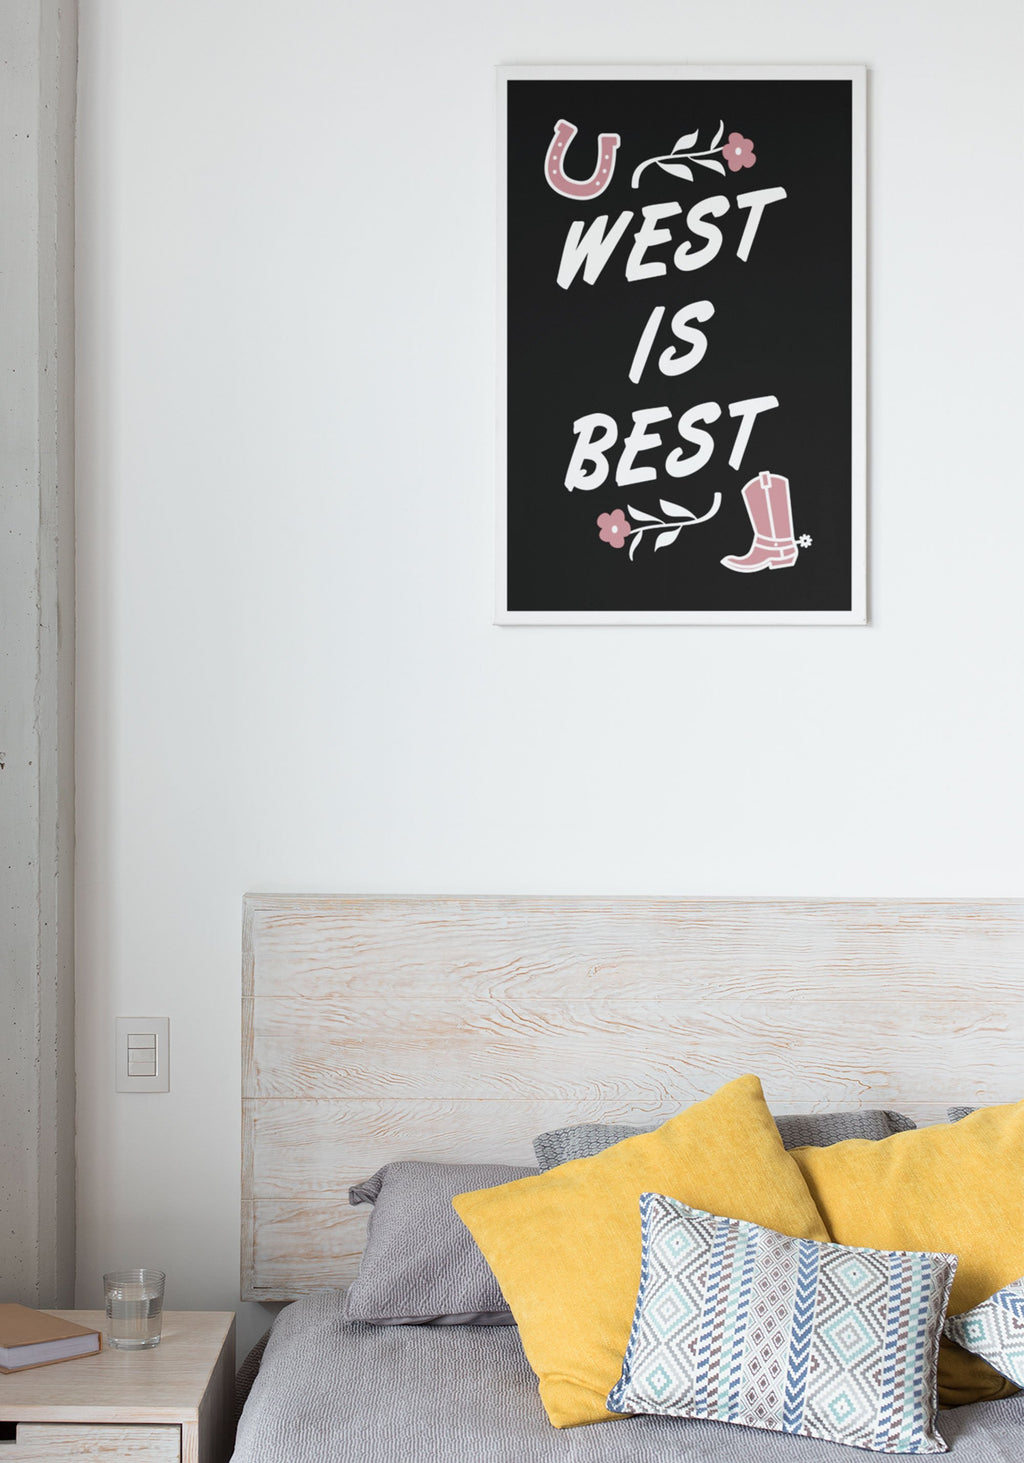 West is Best Poster Print / 18x24 wall art prints / vintage retro cowgirl / southwest decor style / western gifts illustration